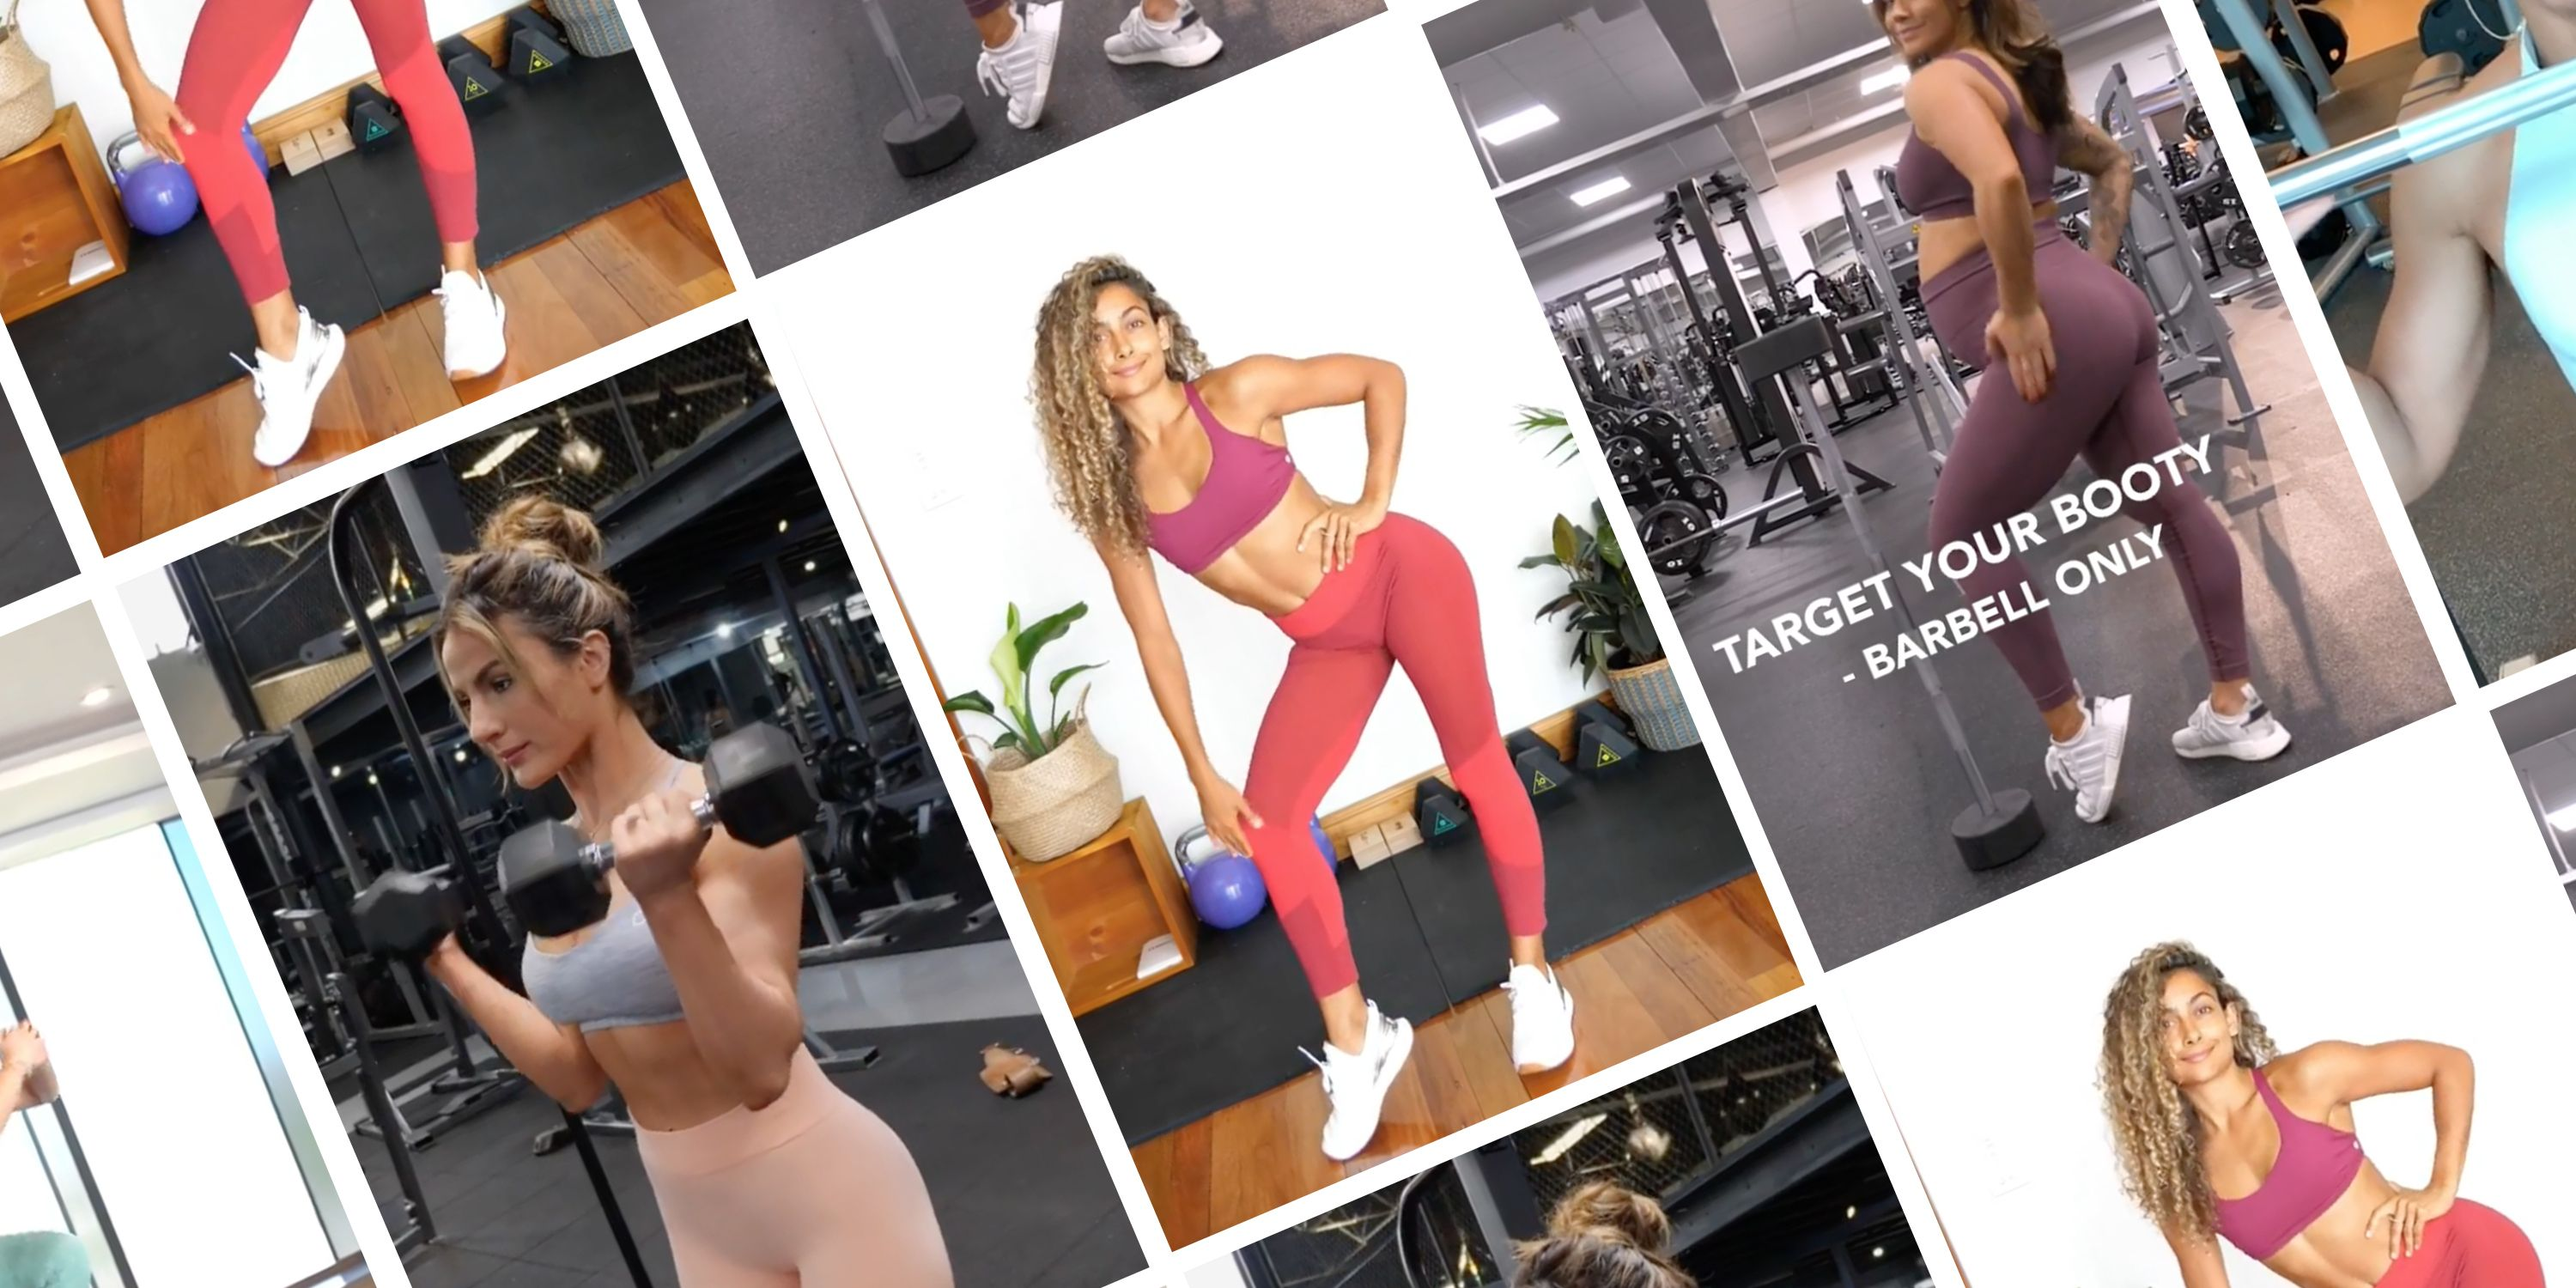 31 Inspiring Fit Girls On Instagram Workout Motivation From Female Fitness Models What makes motivated fit so different? workout motivation from female fitness